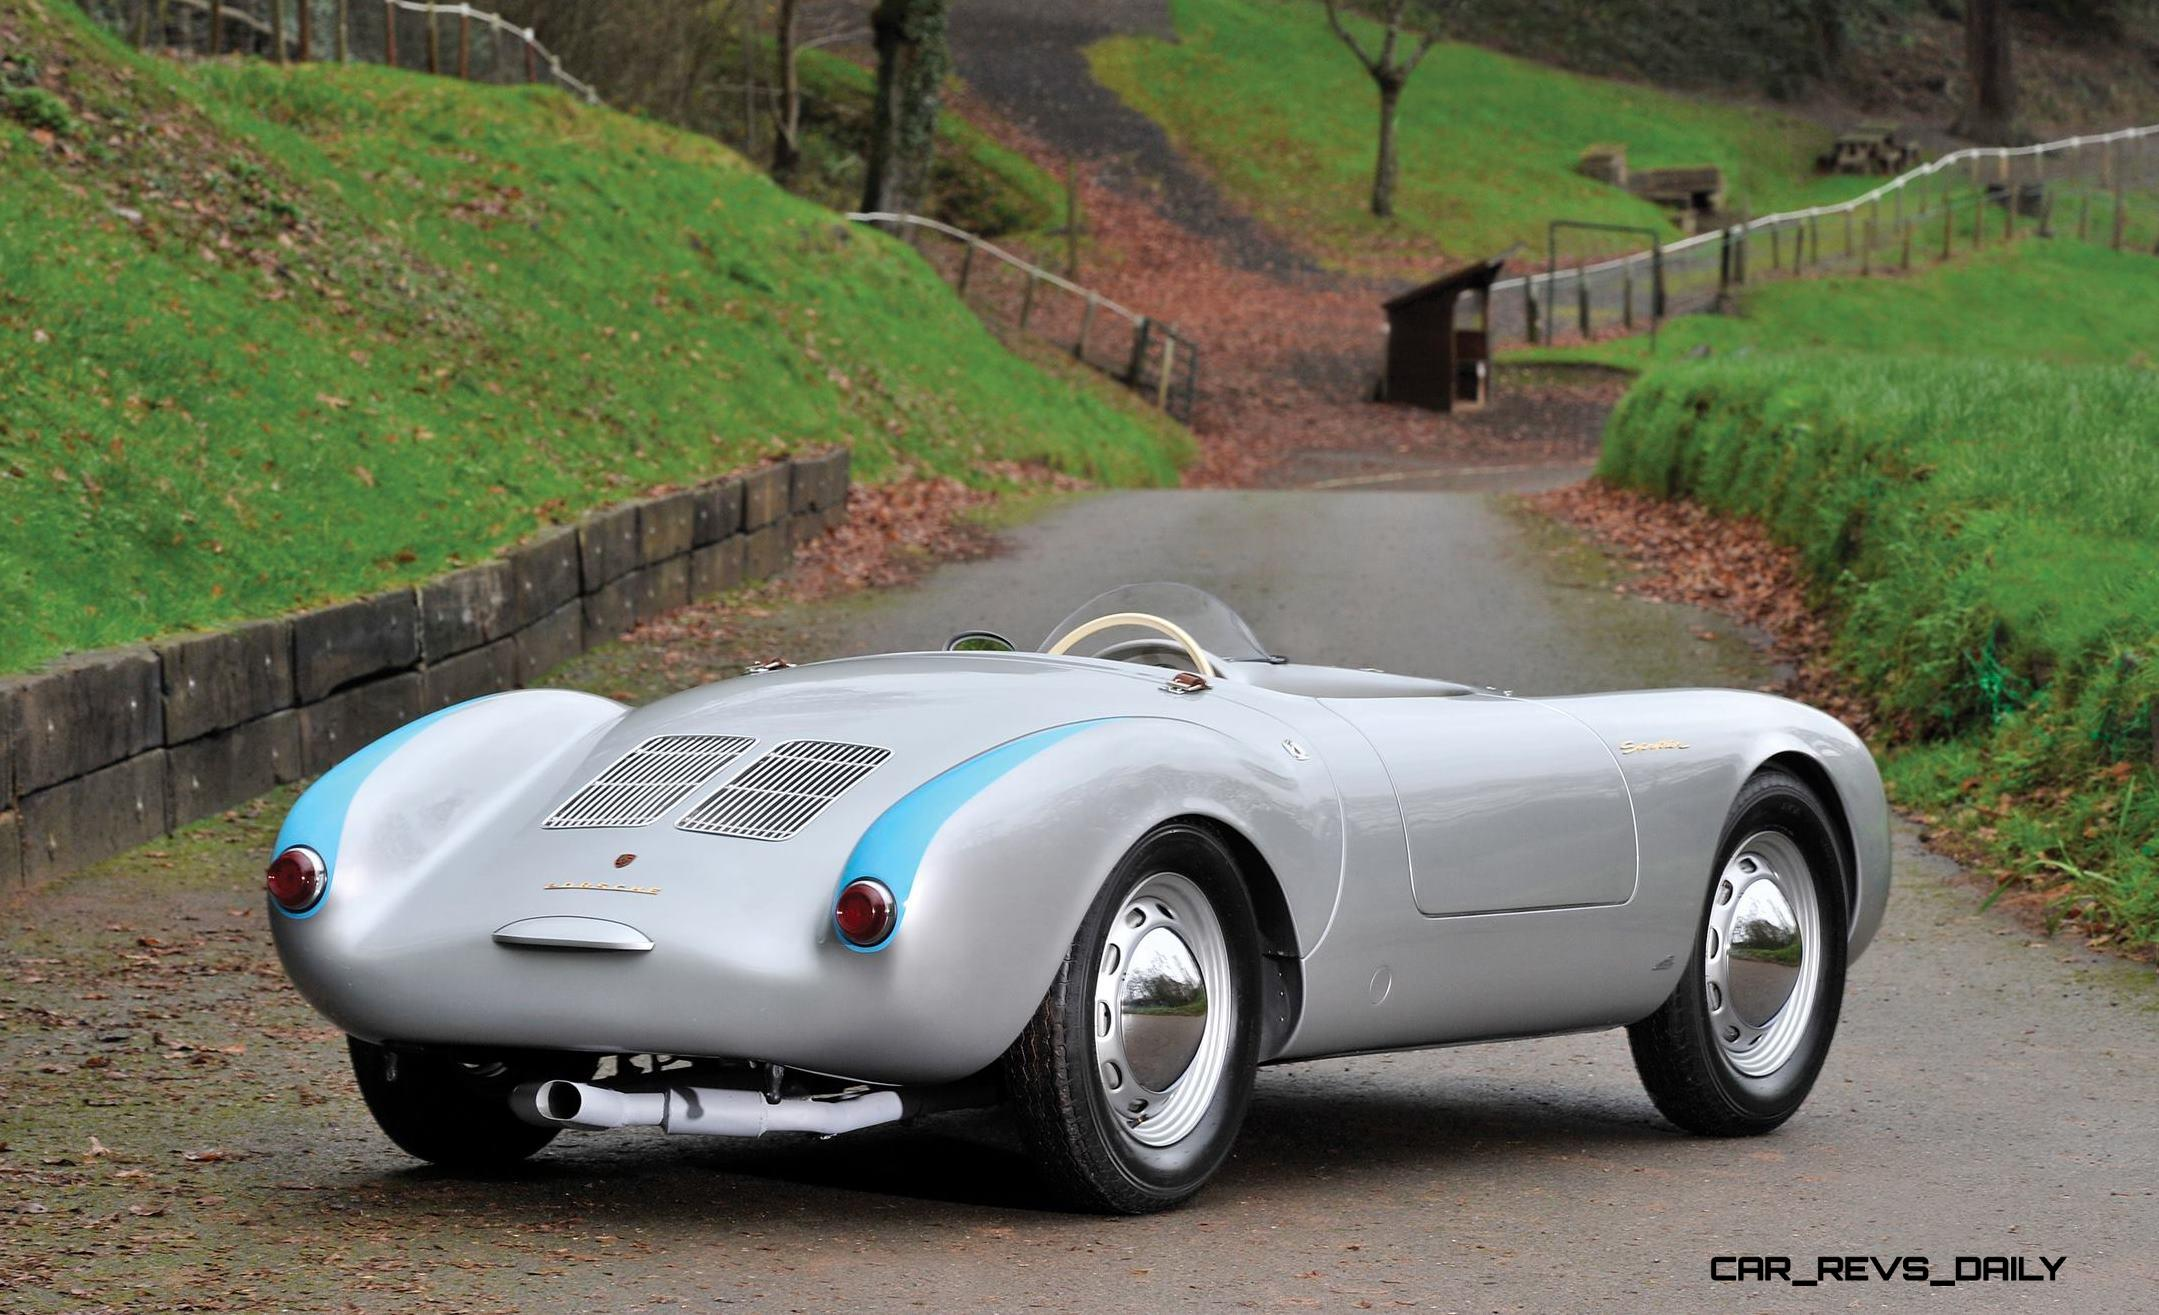 This 1955 Porsche 550 Spyder Is Worth 4k Per Pound